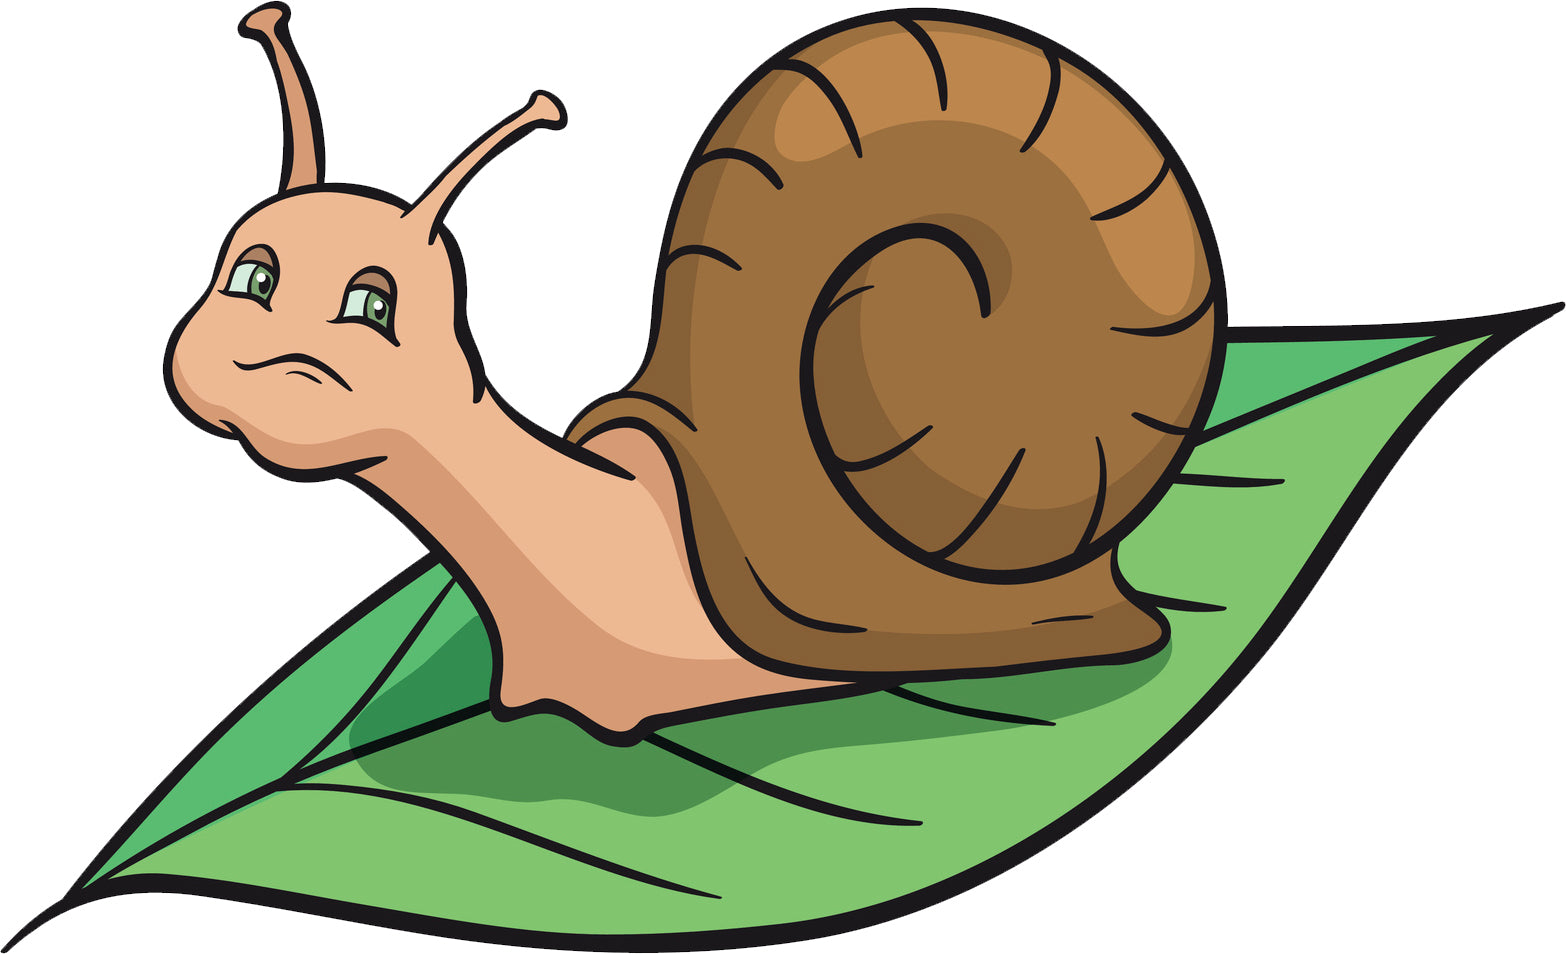 Cute Garden Snail on Leaf Pen Art Cartoon Vinyl Decal Sticker